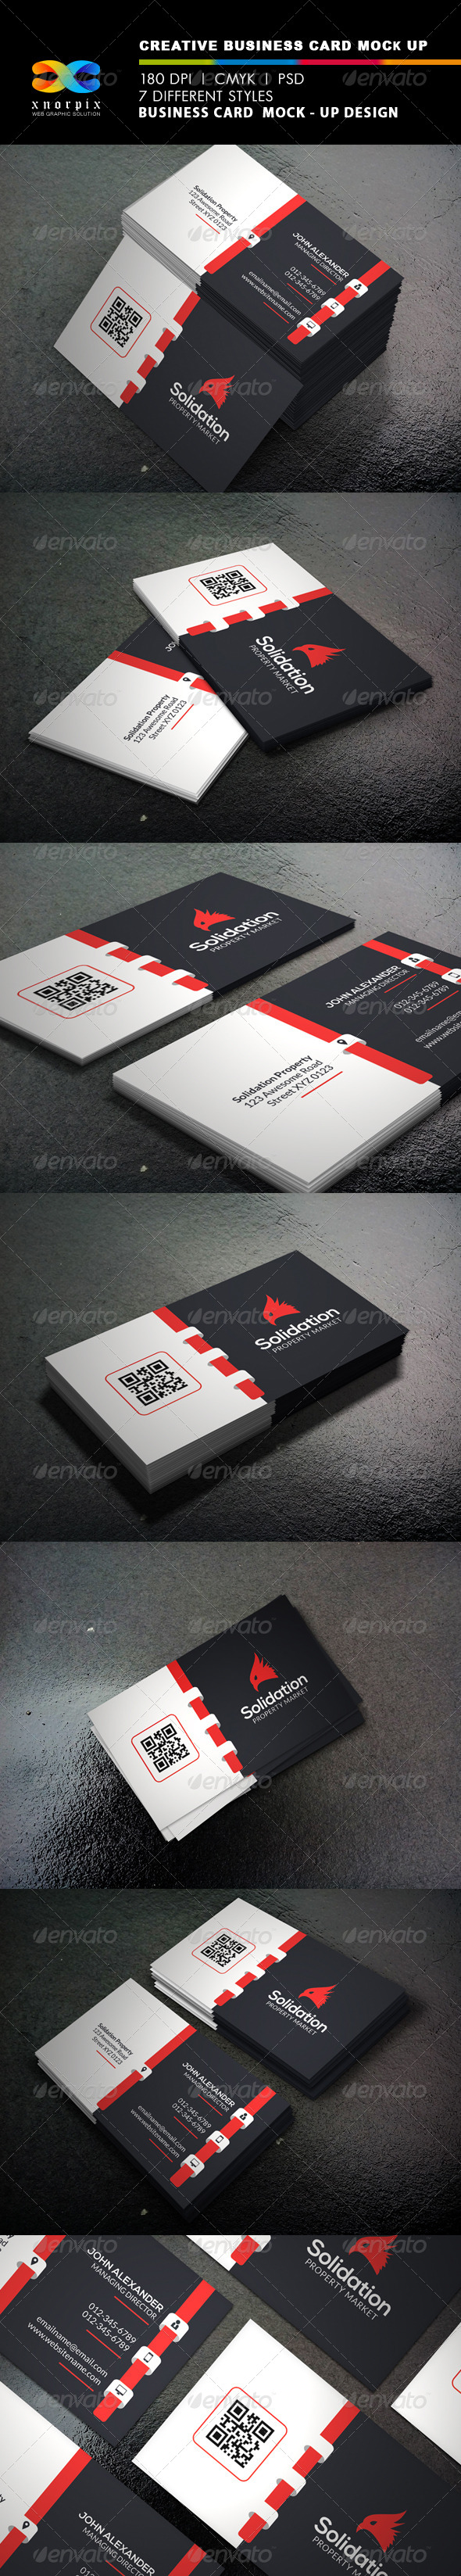 GraphicRiver Realistic Business Card Mock up 8220020